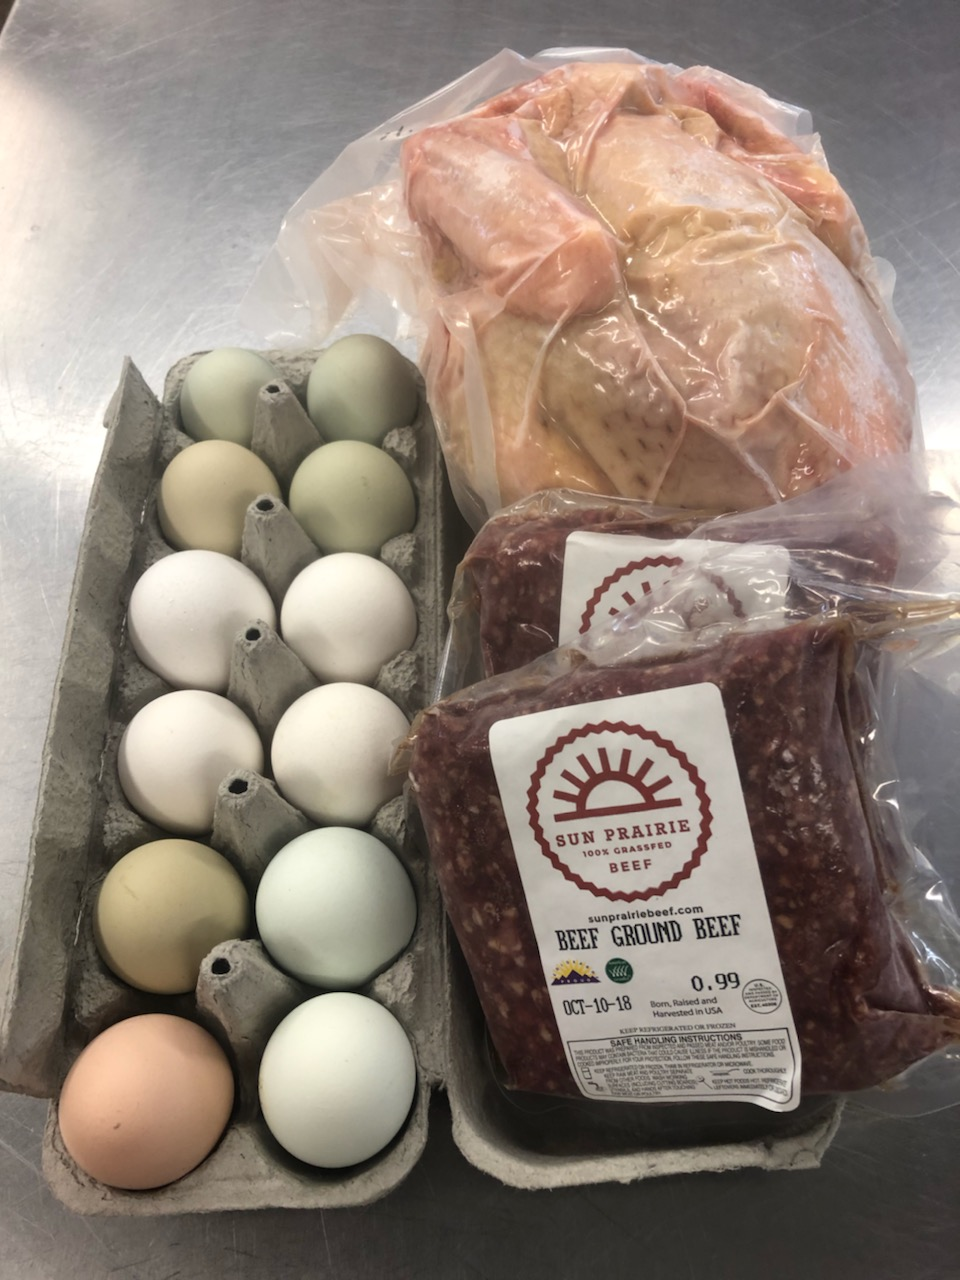 Protein Share - Beef (2 pounds ground), Chicken (3-4 pounds whole) & Eggs (1 dozen)